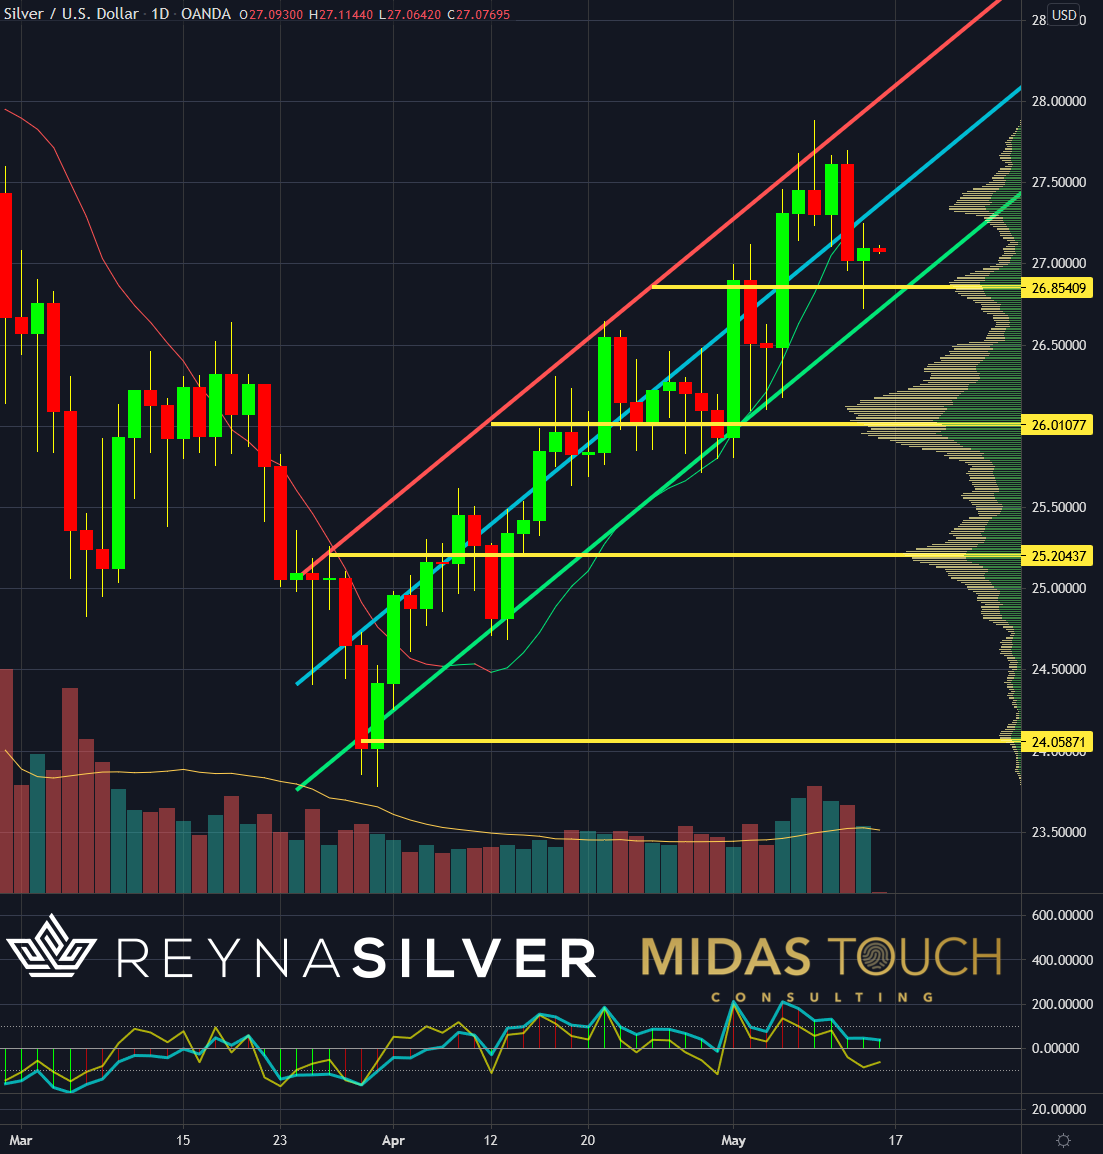 Silver in US-Dollar, daily chart as of May 14th, 2021.